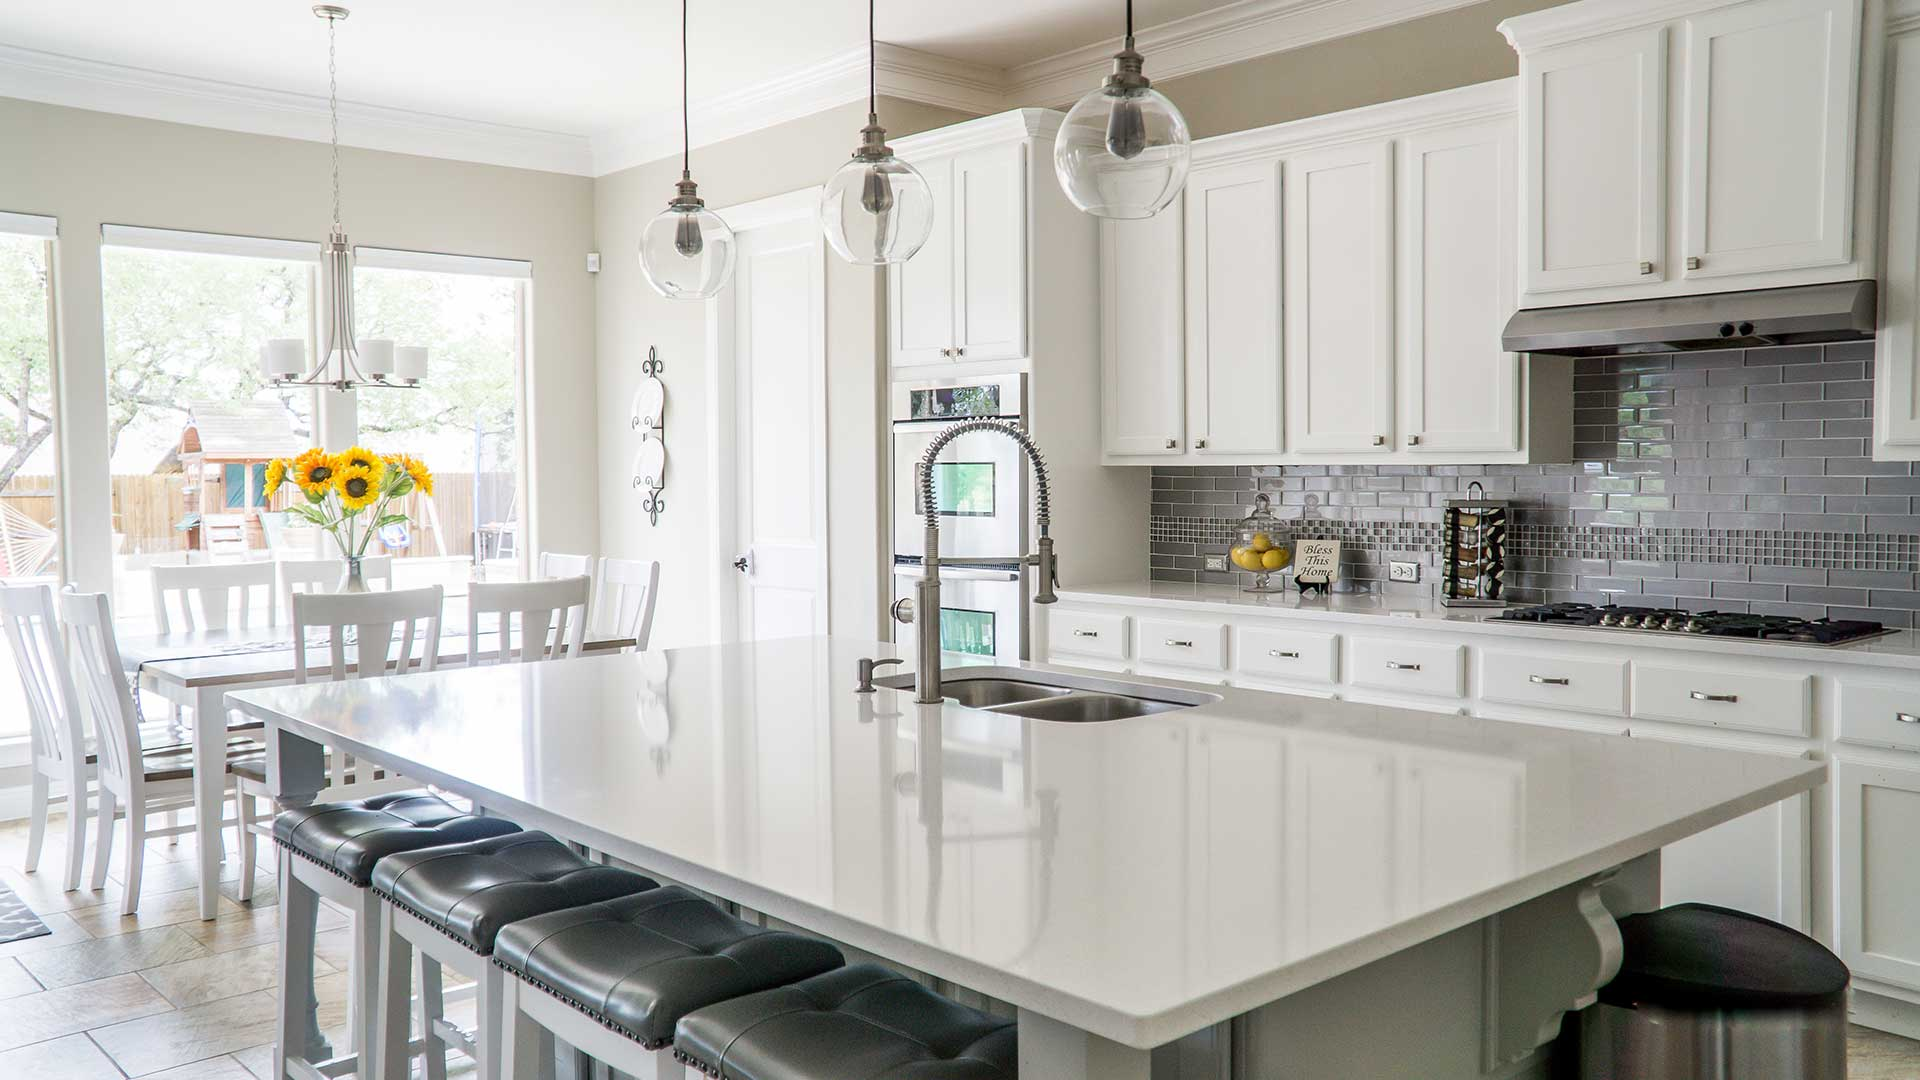 custom home, kitchen & bathroom design services | londonderry, nh